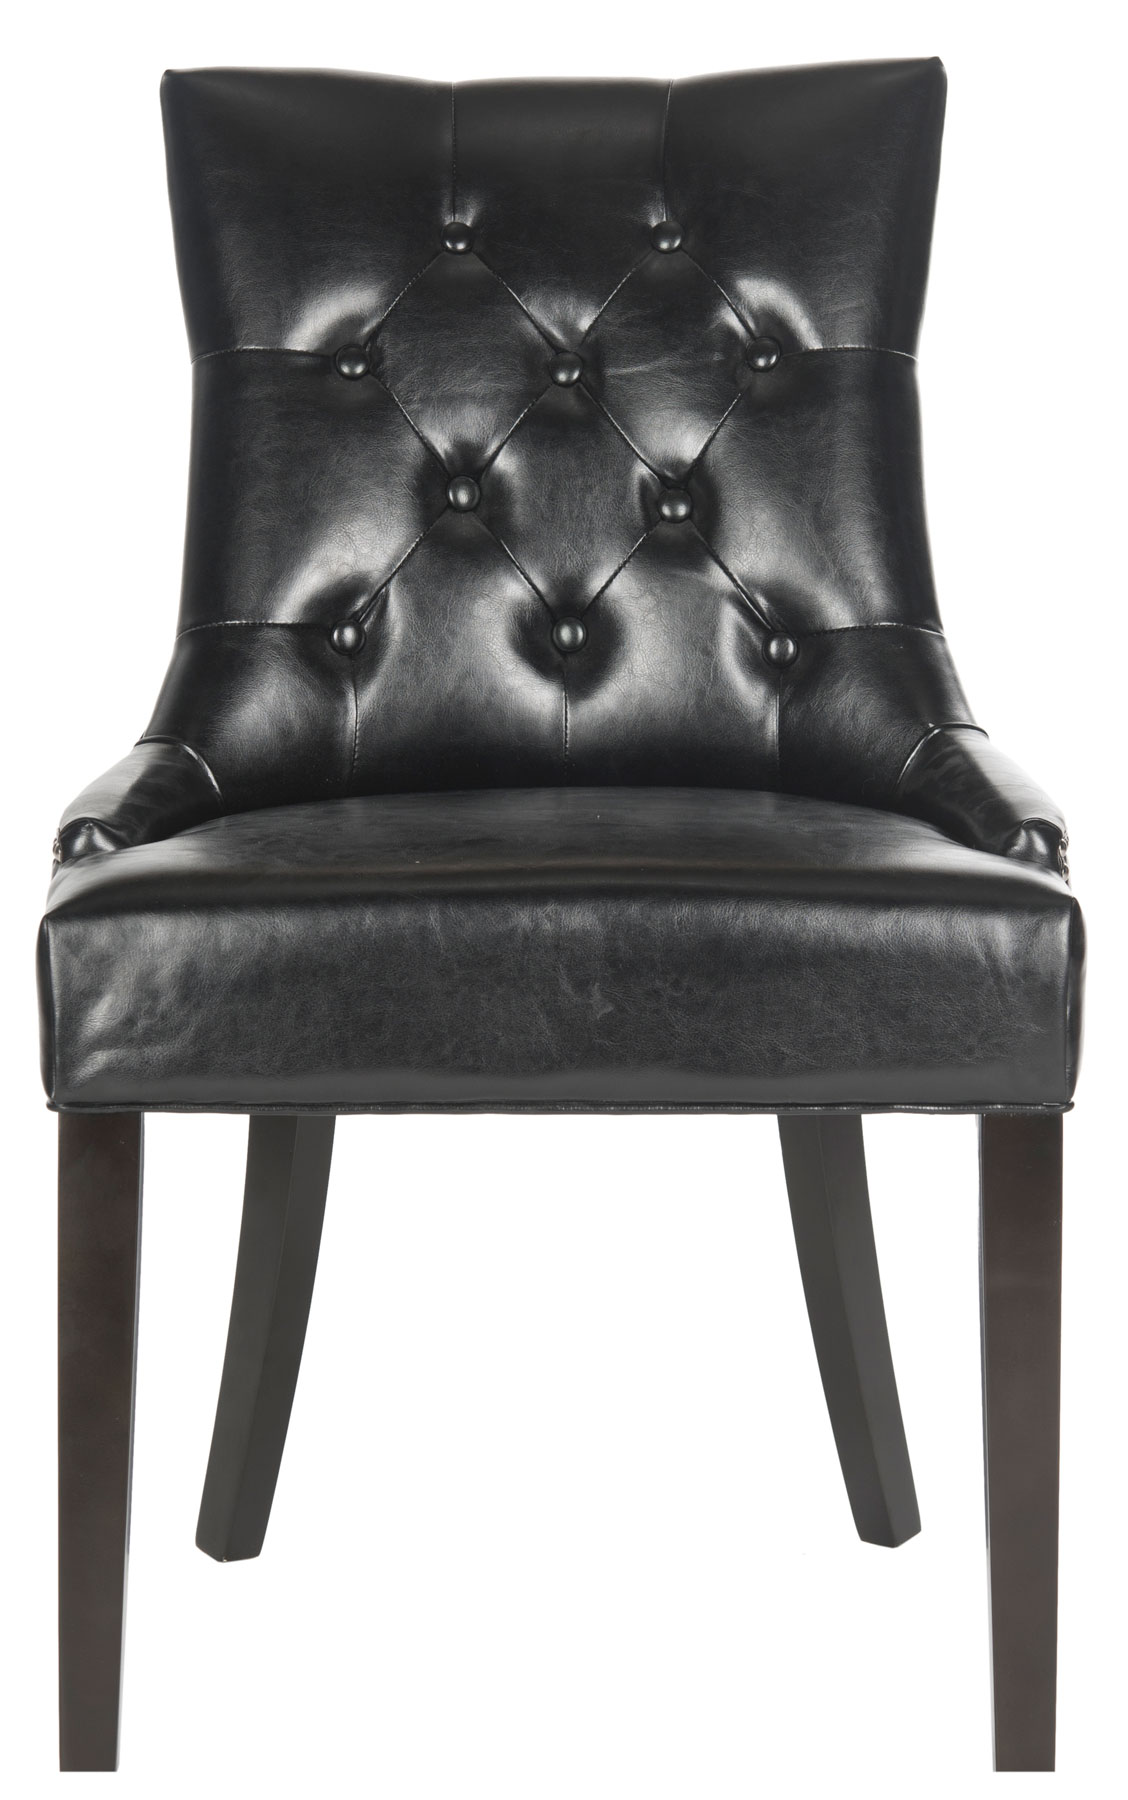 safavieh sinclair ring side chair good fishing mcr4716c set2 dining chairs furniture by